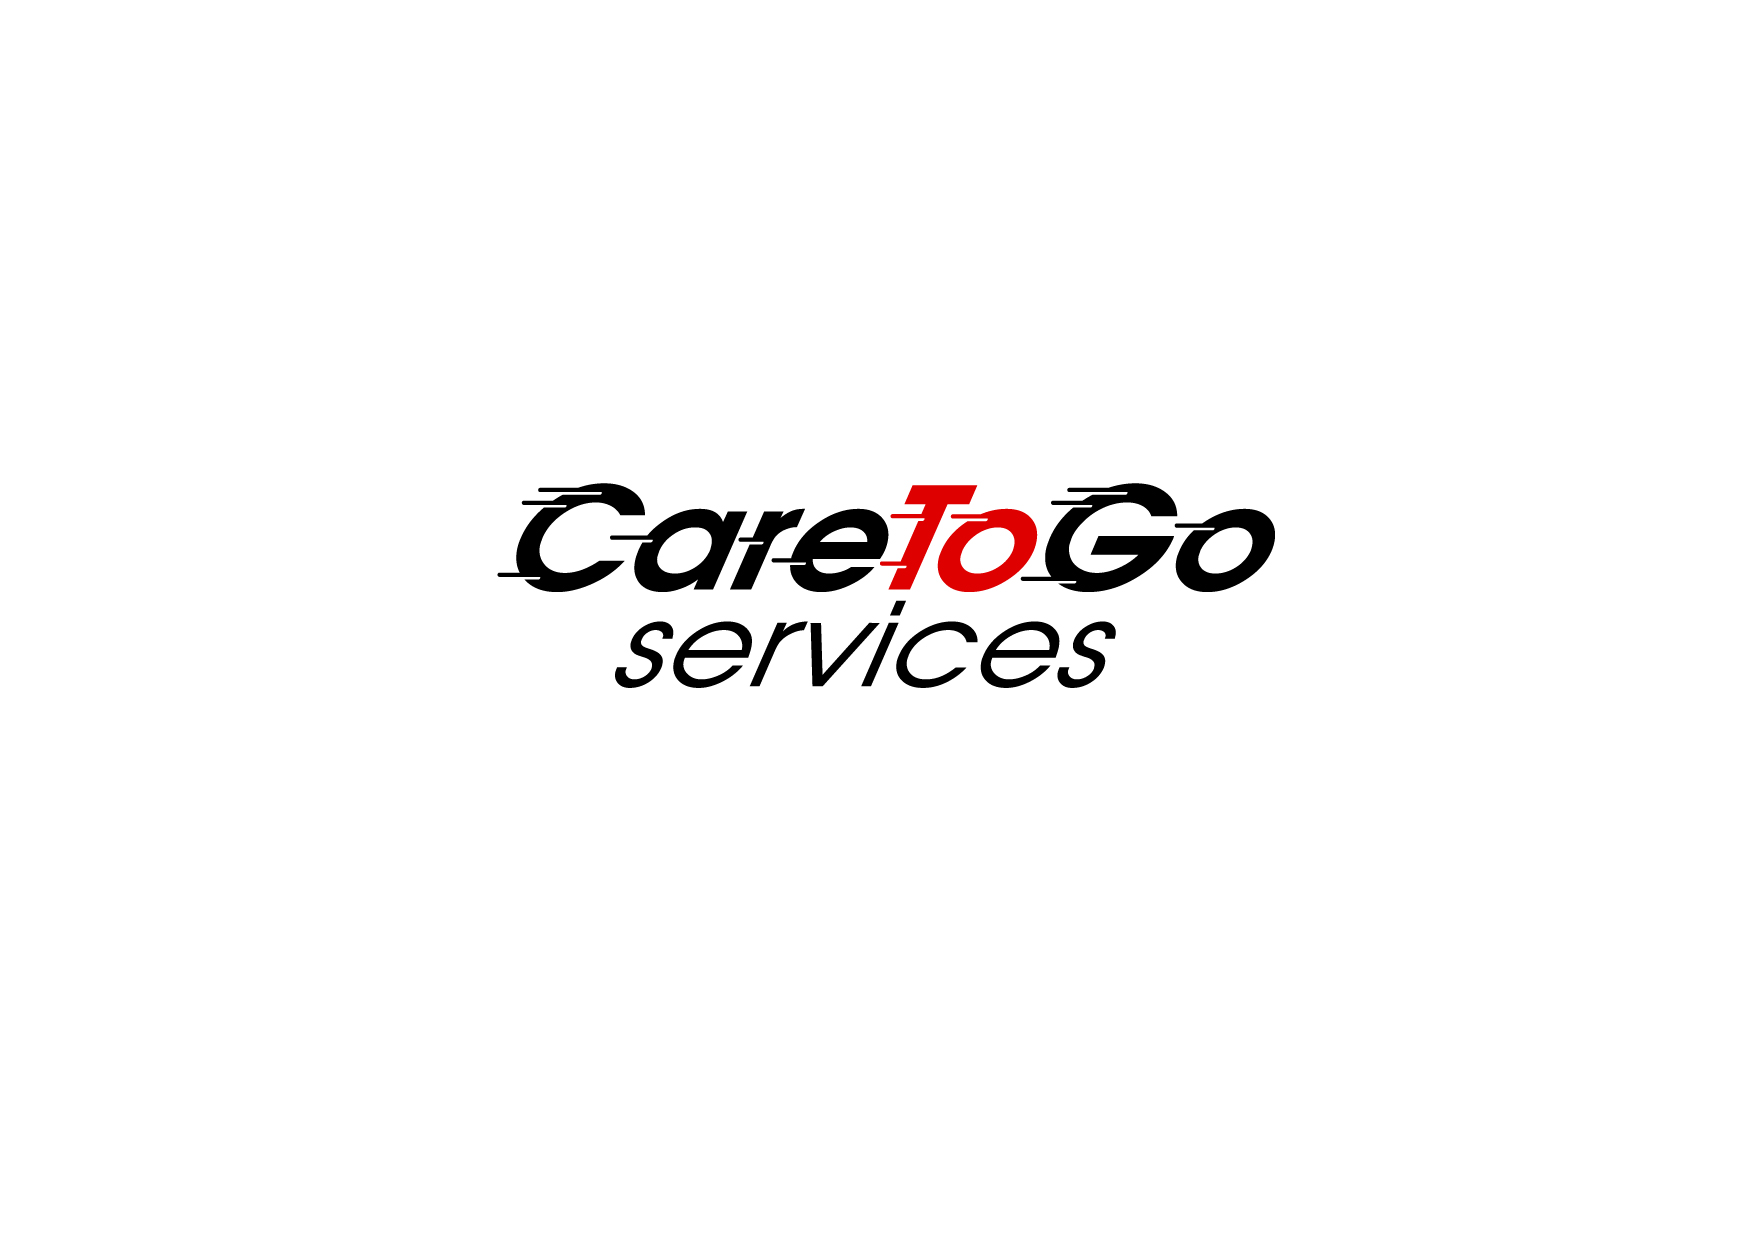 Logo Design by Wilfredo Mendoza - Entry No. 168 in the Logo Design Contest Care To Go Services.